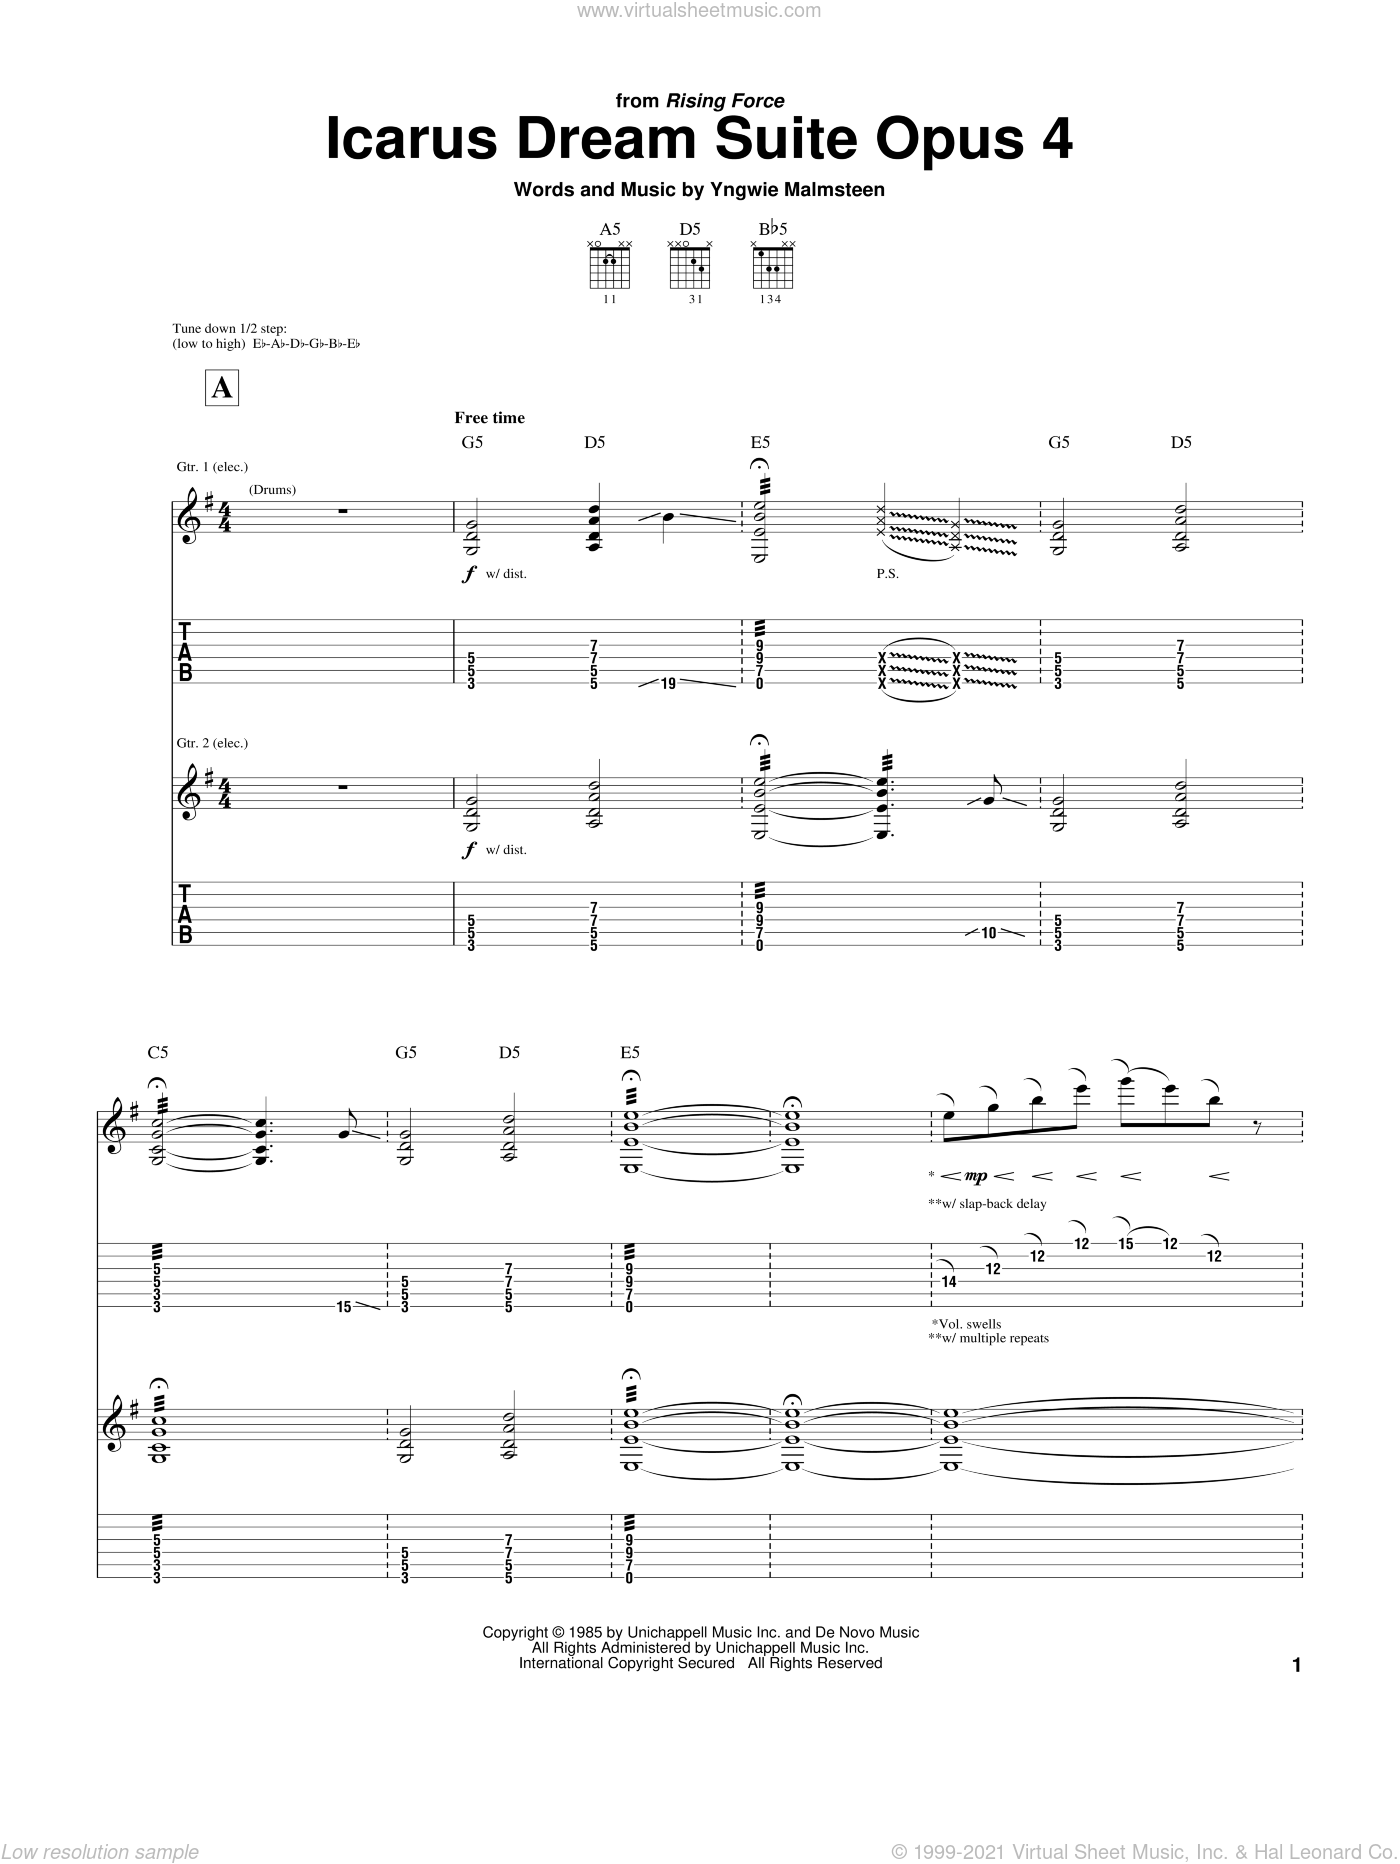 Icarus Dream Suite Opus 4 sheet music for guitar (tablature) by Yngwie Malmsteen